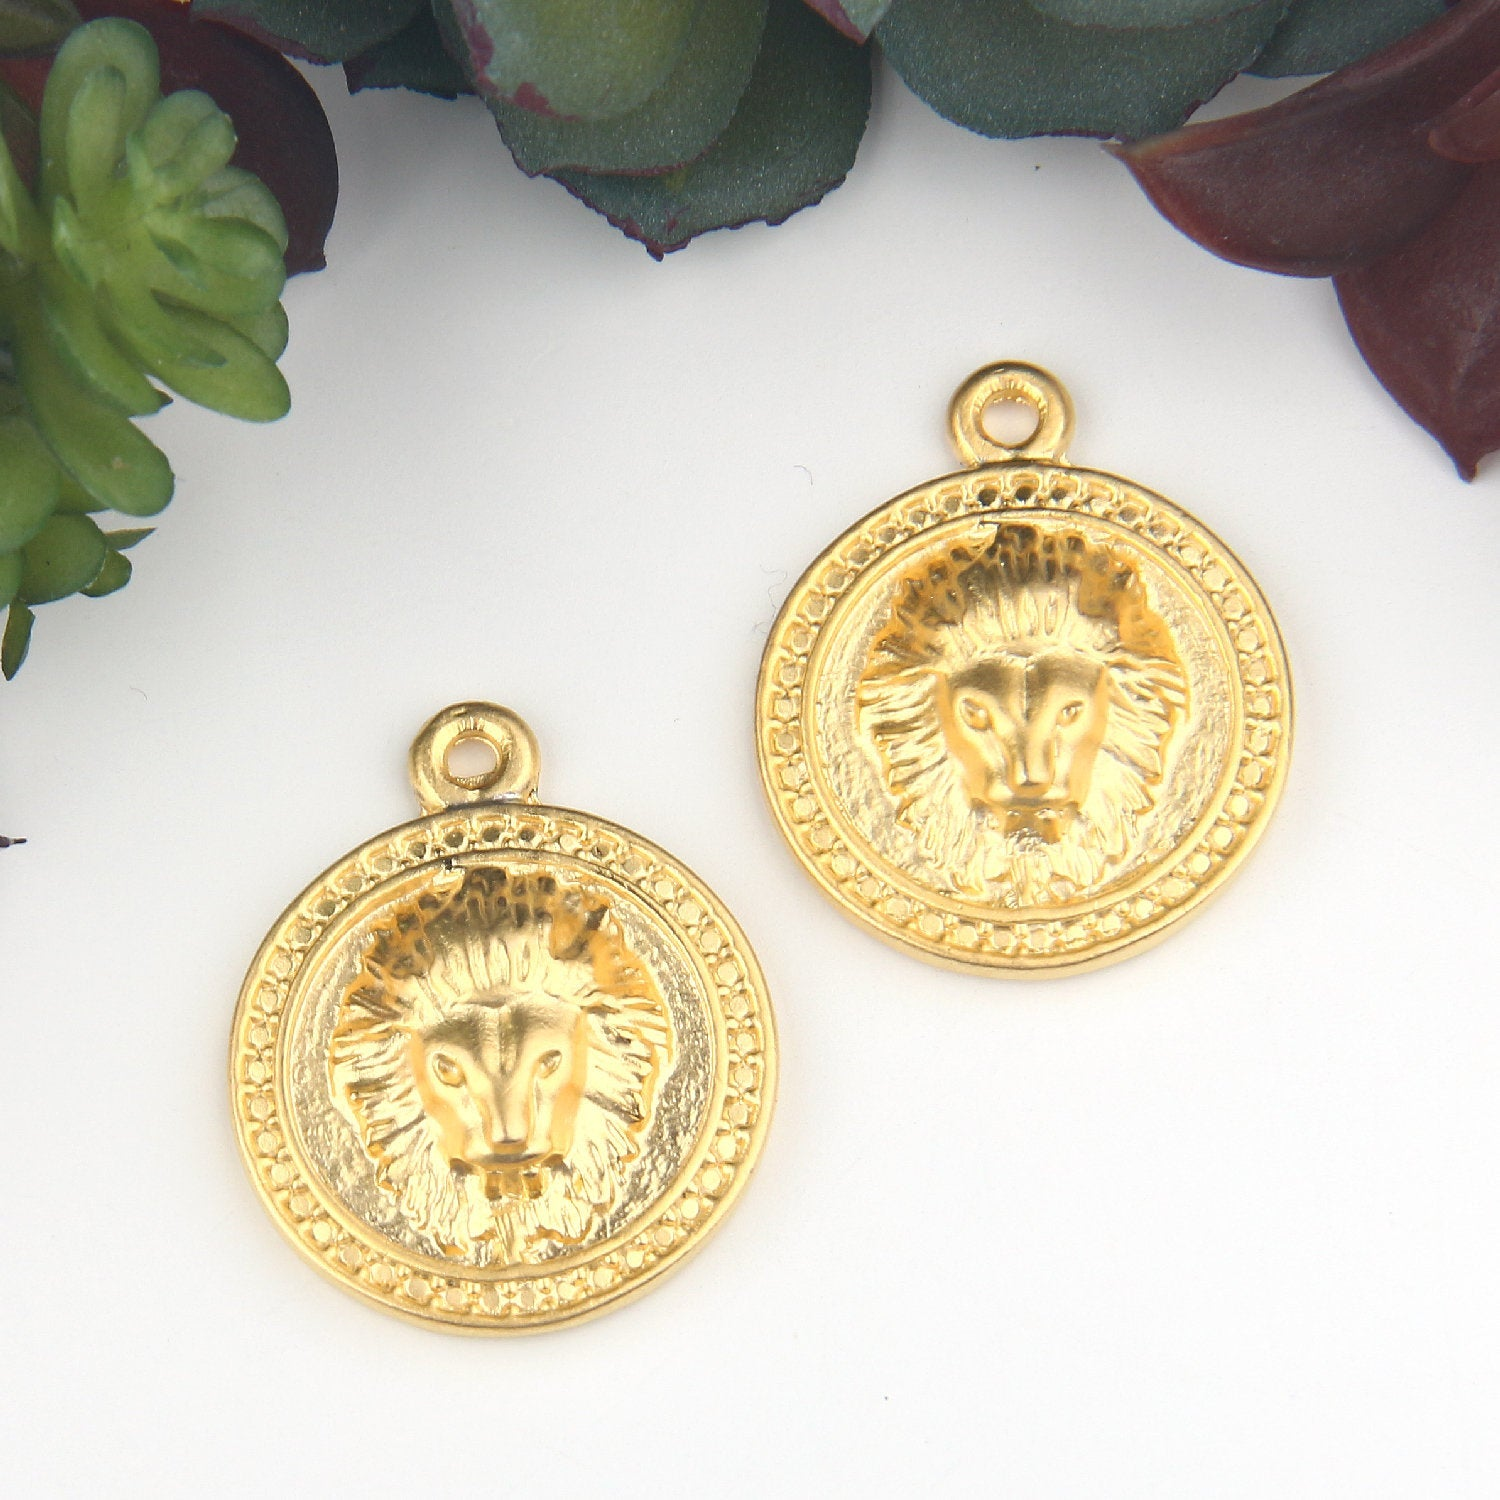 Gold, Puffed Lion Medallion Pendants, Gold Medallion, Jewelry SUpplies, Jewelry Findings, 2 pieces // GP-605